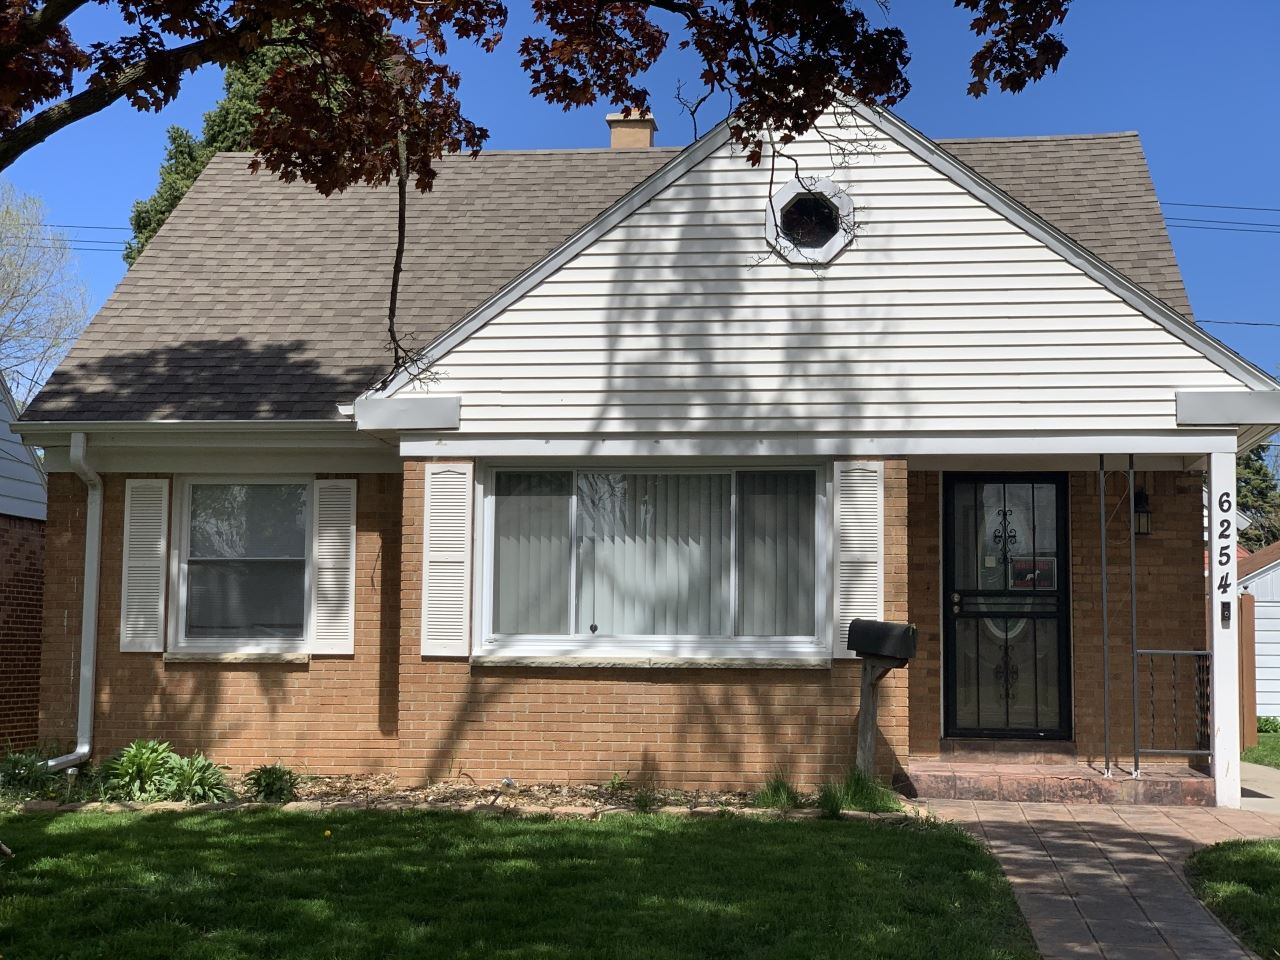 6254 W Leon Ter, Milwaukee, WI 53218 - #: 1690217